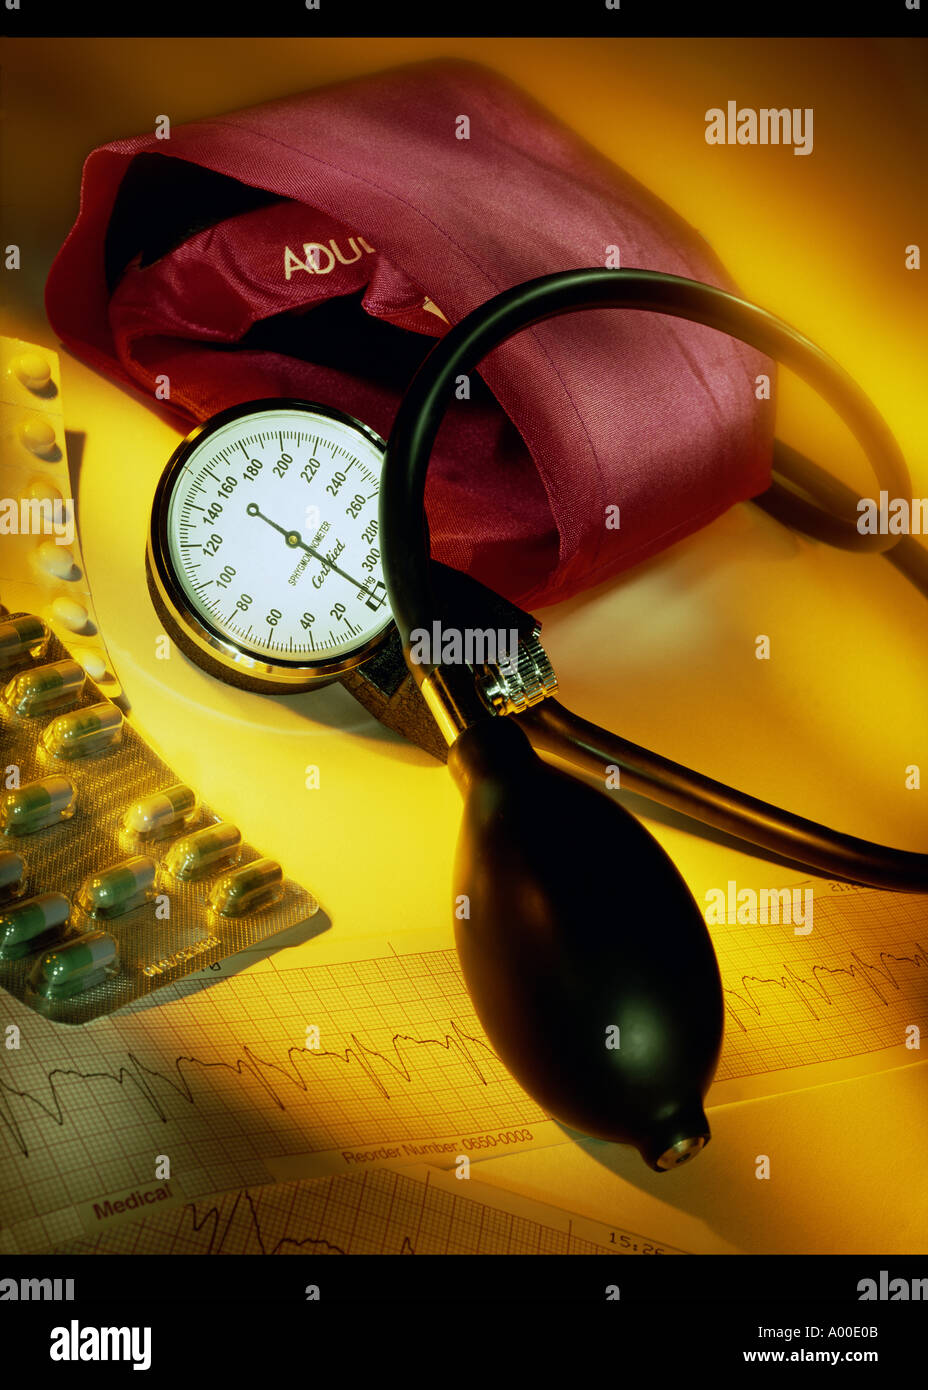 Sphygmomanometer - used for taking blood pressure - Stock Image